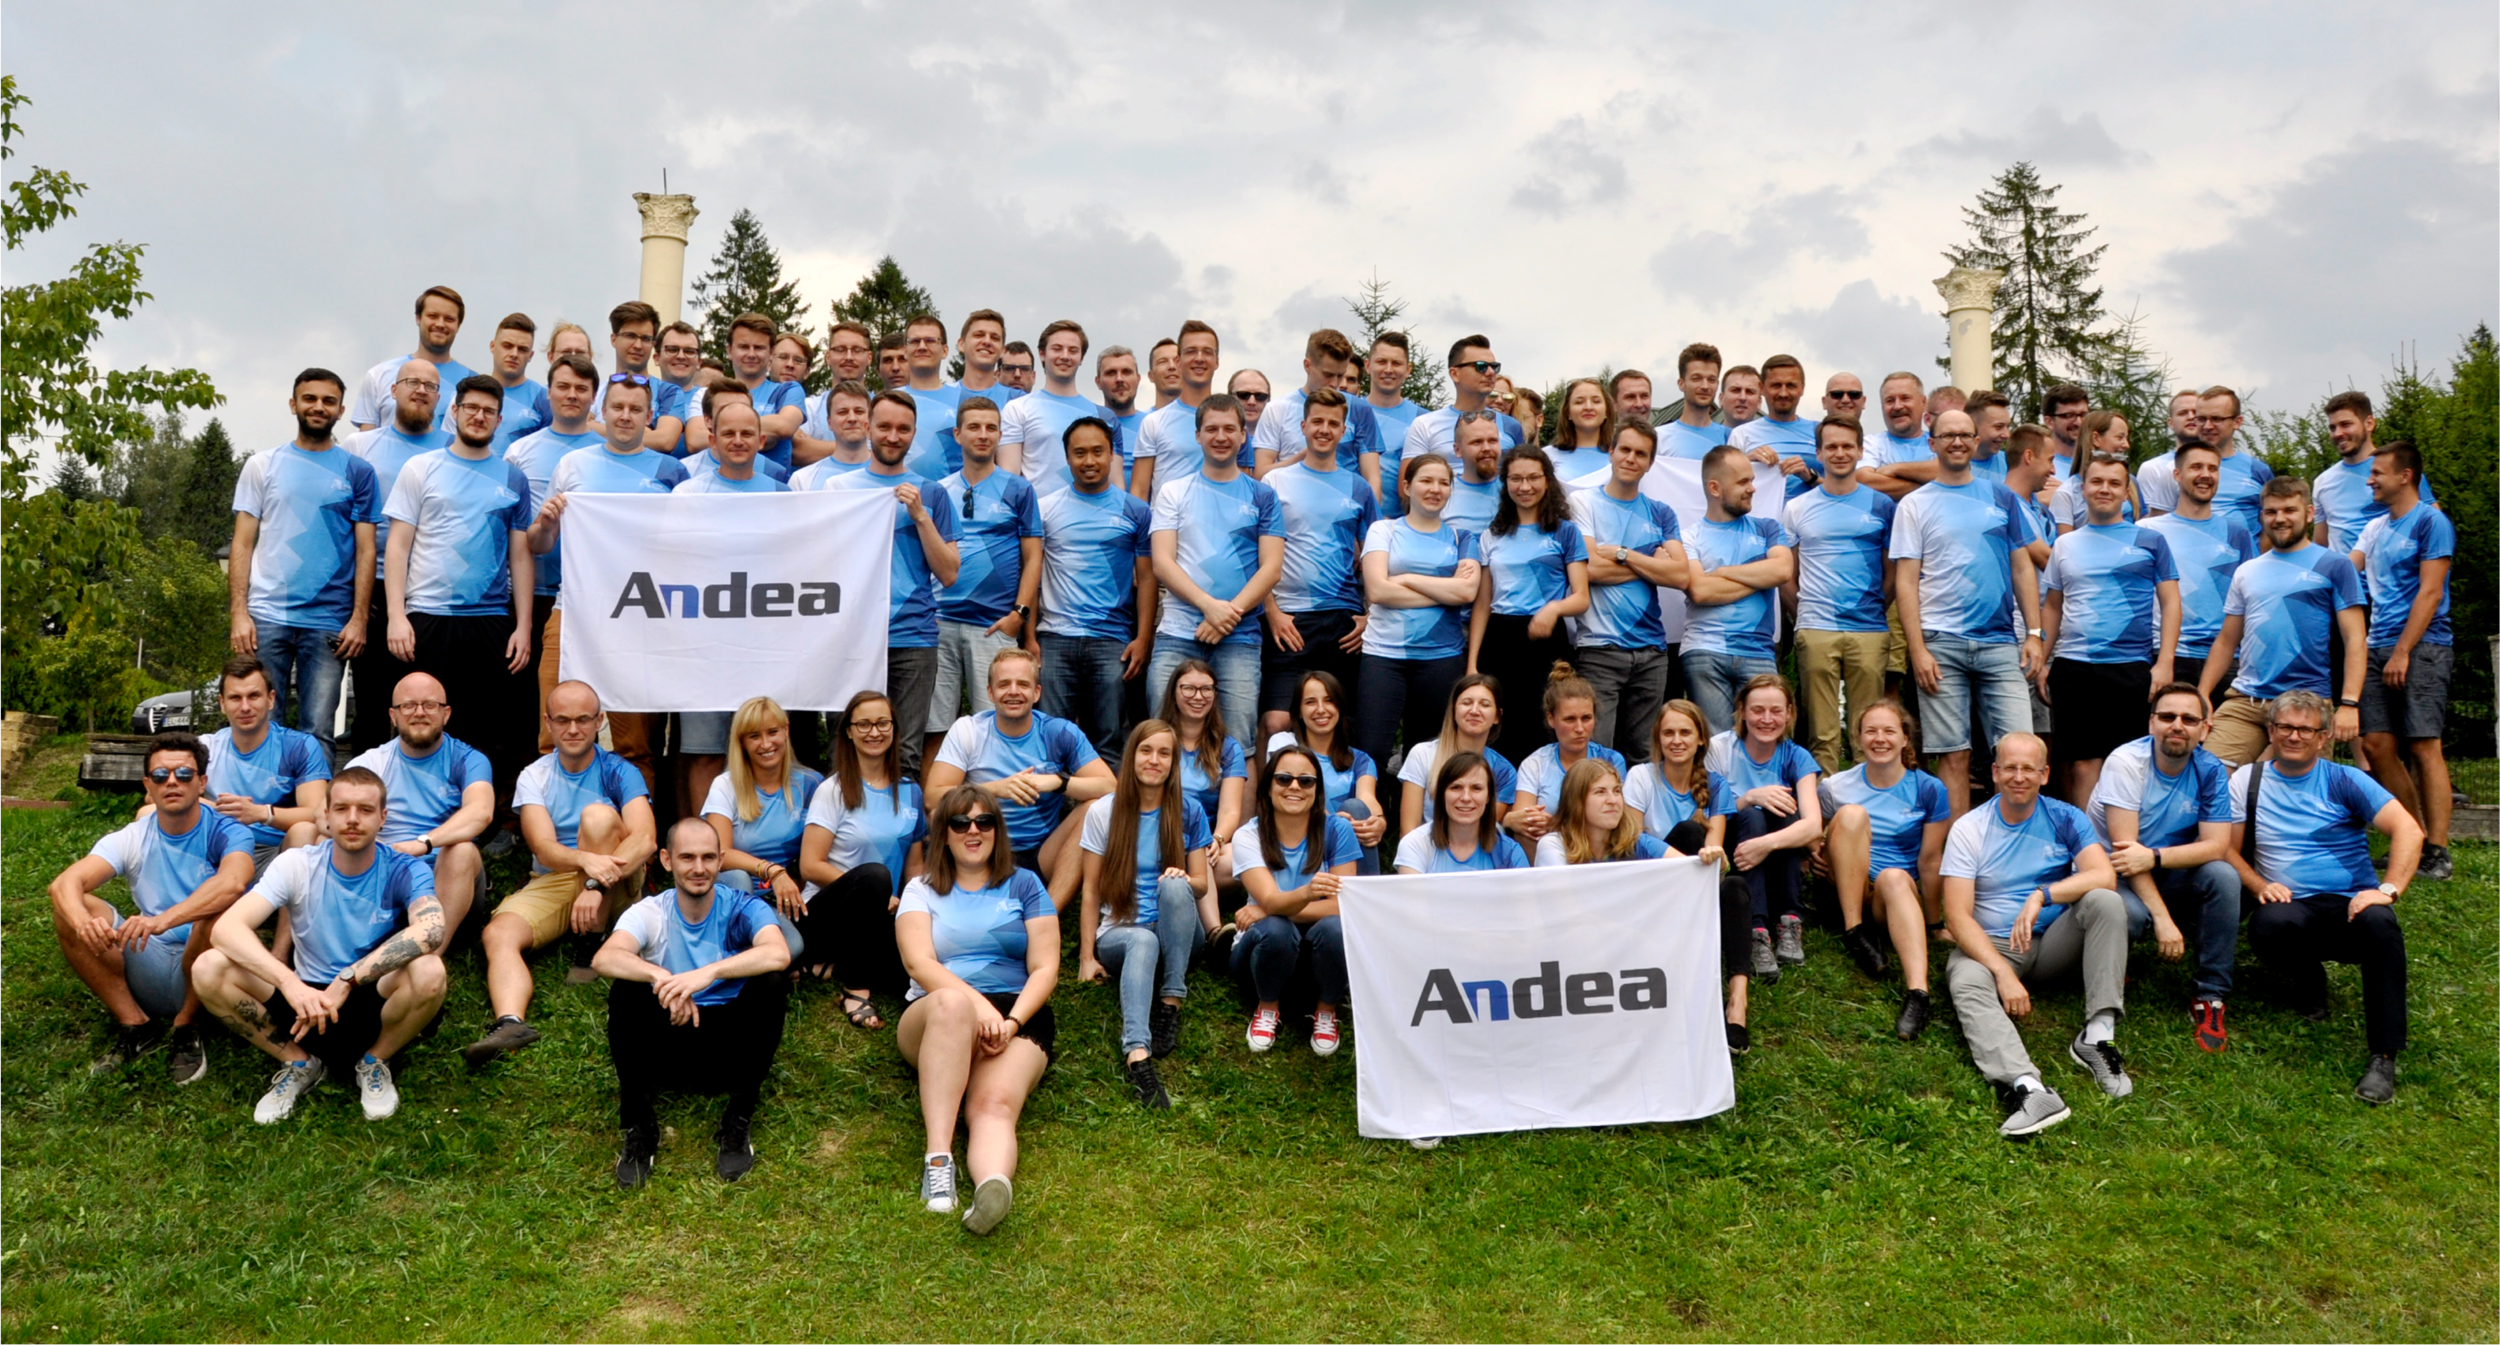 The majority of the EU Andea team as of August 2018